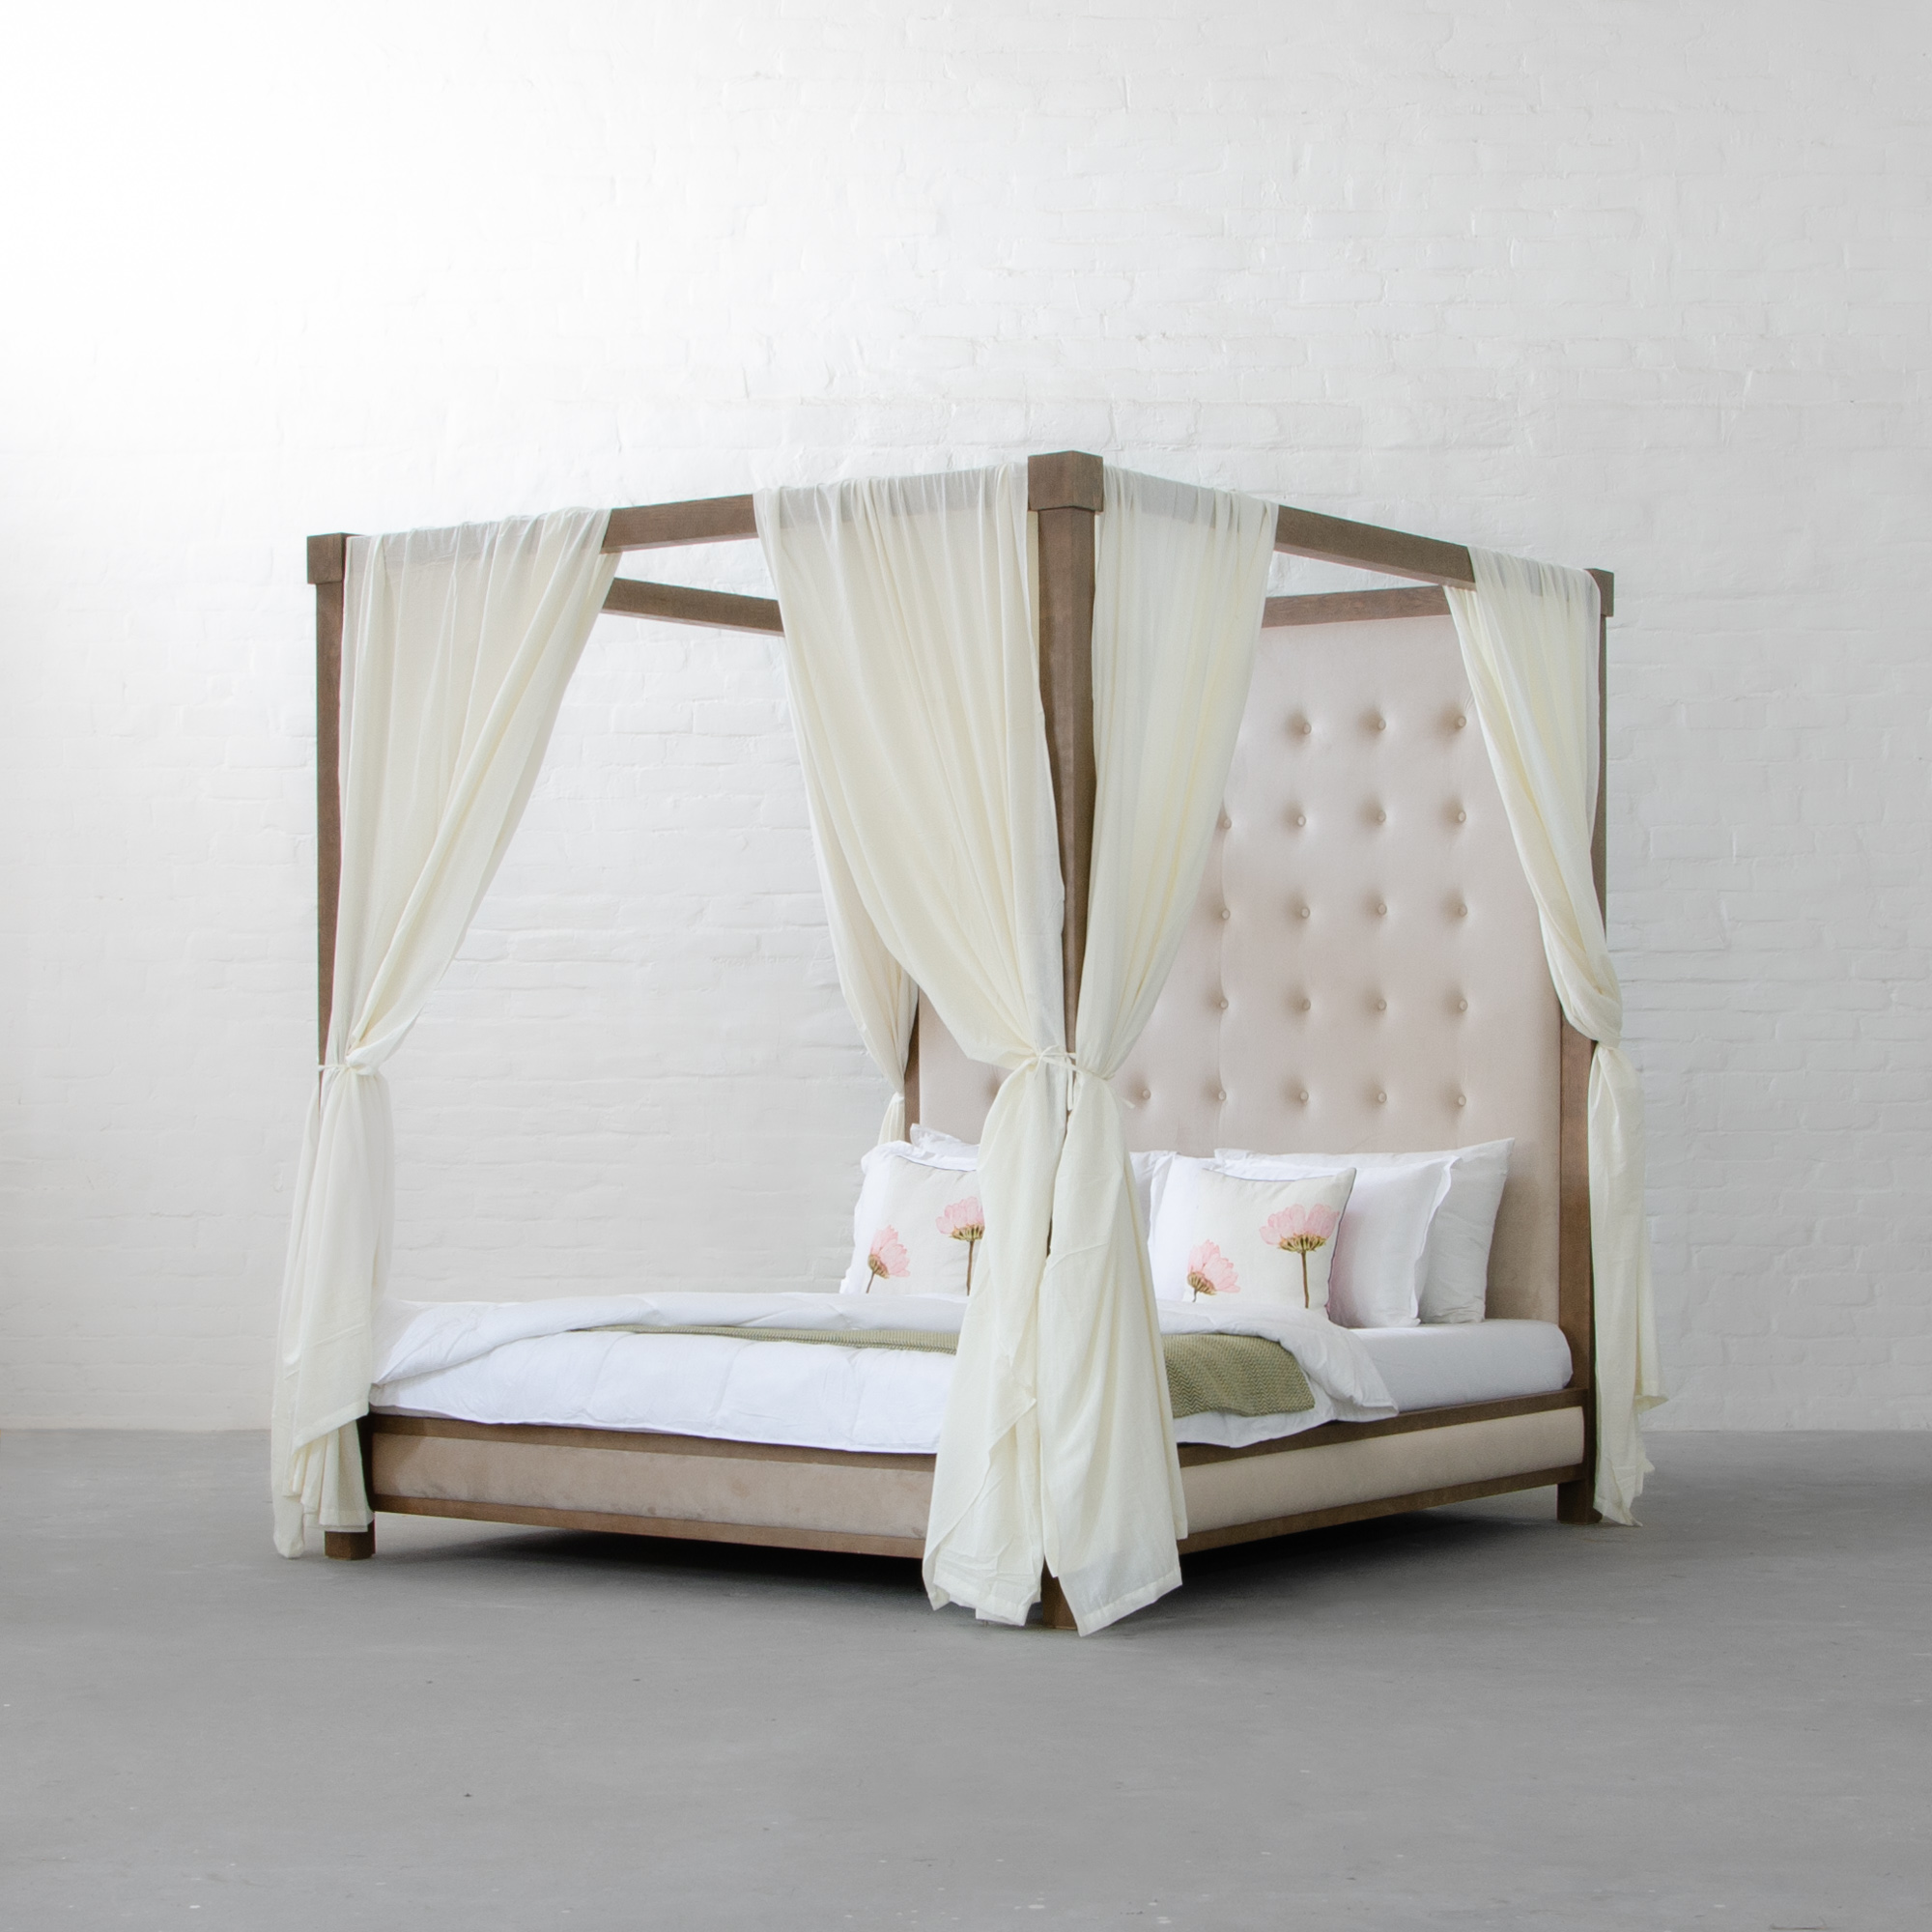 Poster bed<abbr>Jaipur, Rajasthan<br>Western hemlock contemporary style bed with a royal touch.</abbr>